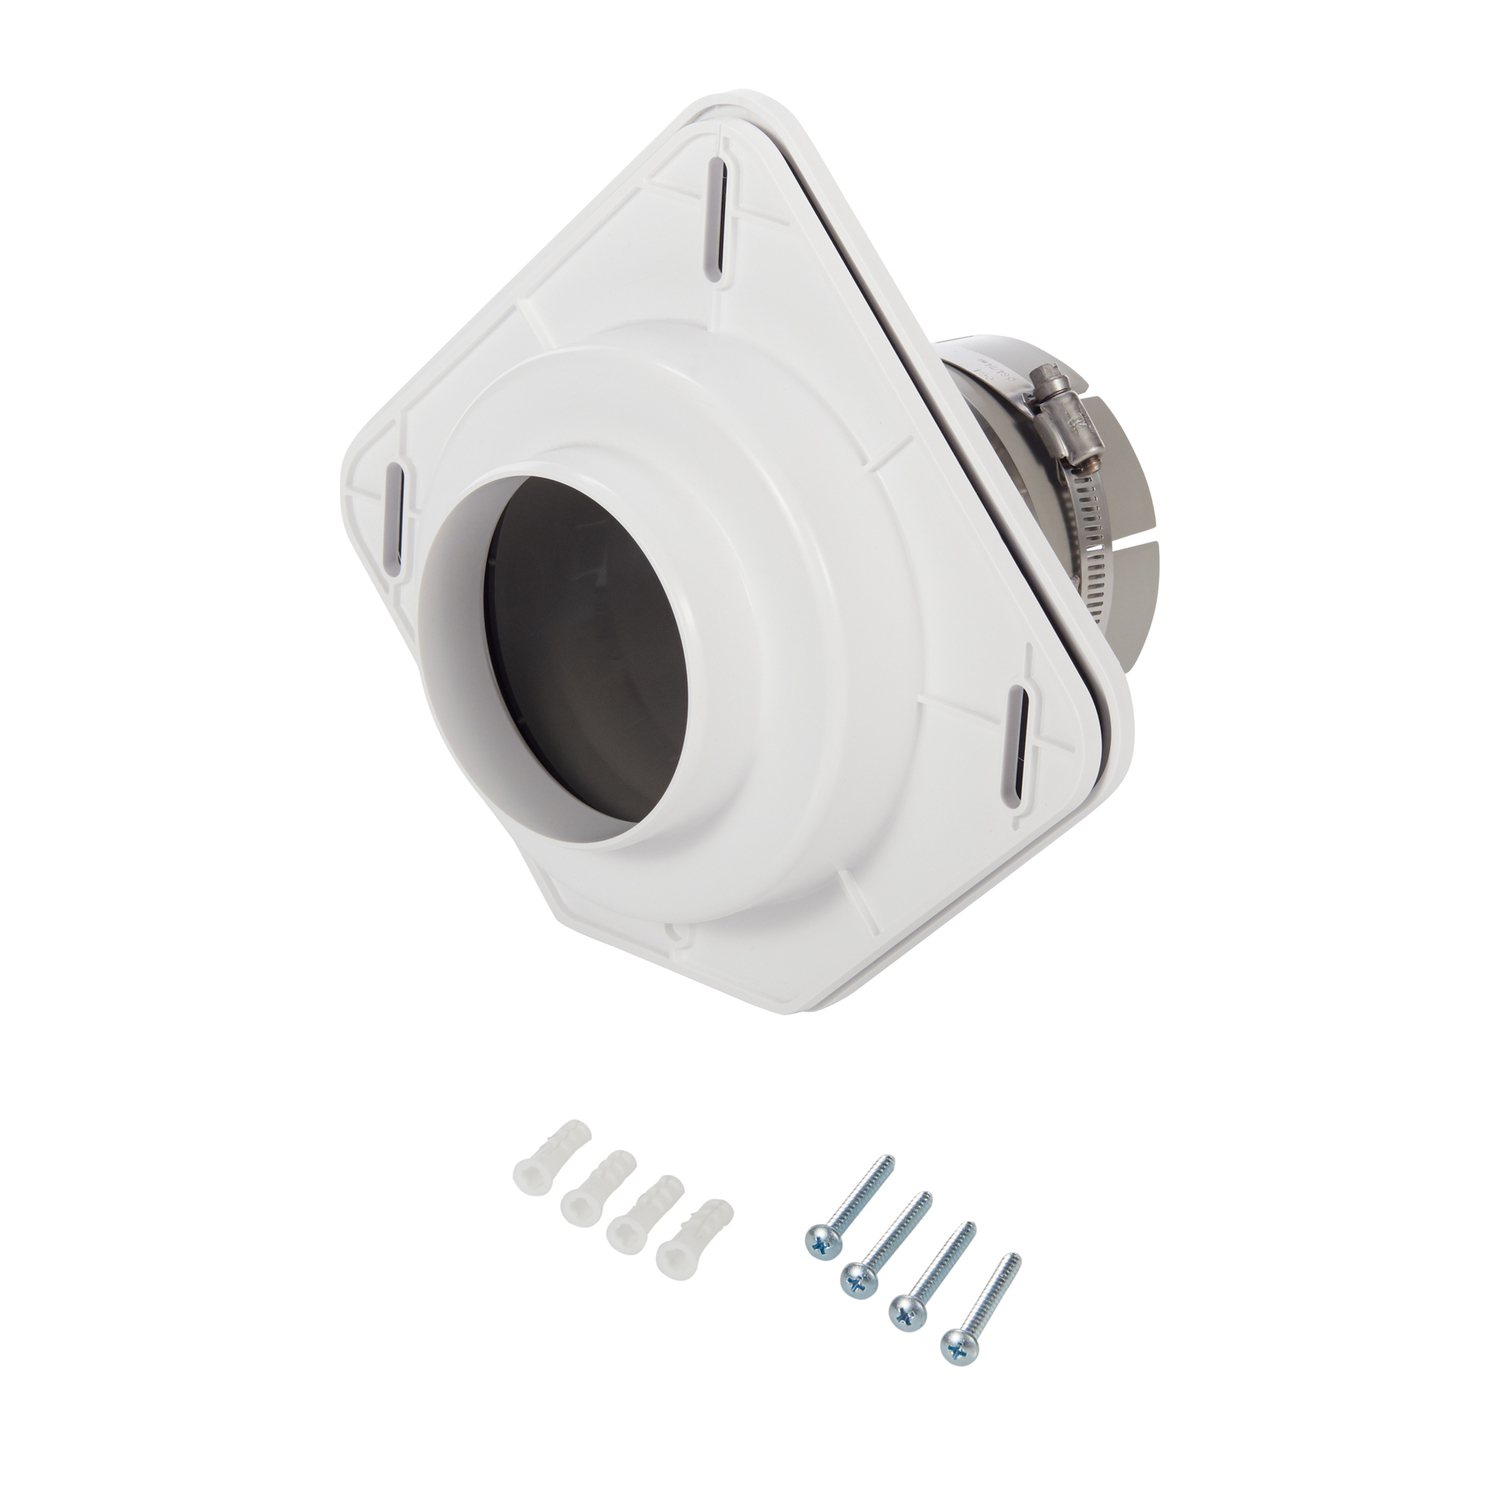 Dryer Vent Made Easy 8.25 L x 30 in. Dia. Dryer Vent Kit Dryer Vent Made Easy is a better way to connect your dryer to the wall. Our product eliminates the wasted space behind a dryer caused by the traditional flex pipe vent. Now, the front of the washer and dryer can line up perfectly. You can slide your dryer